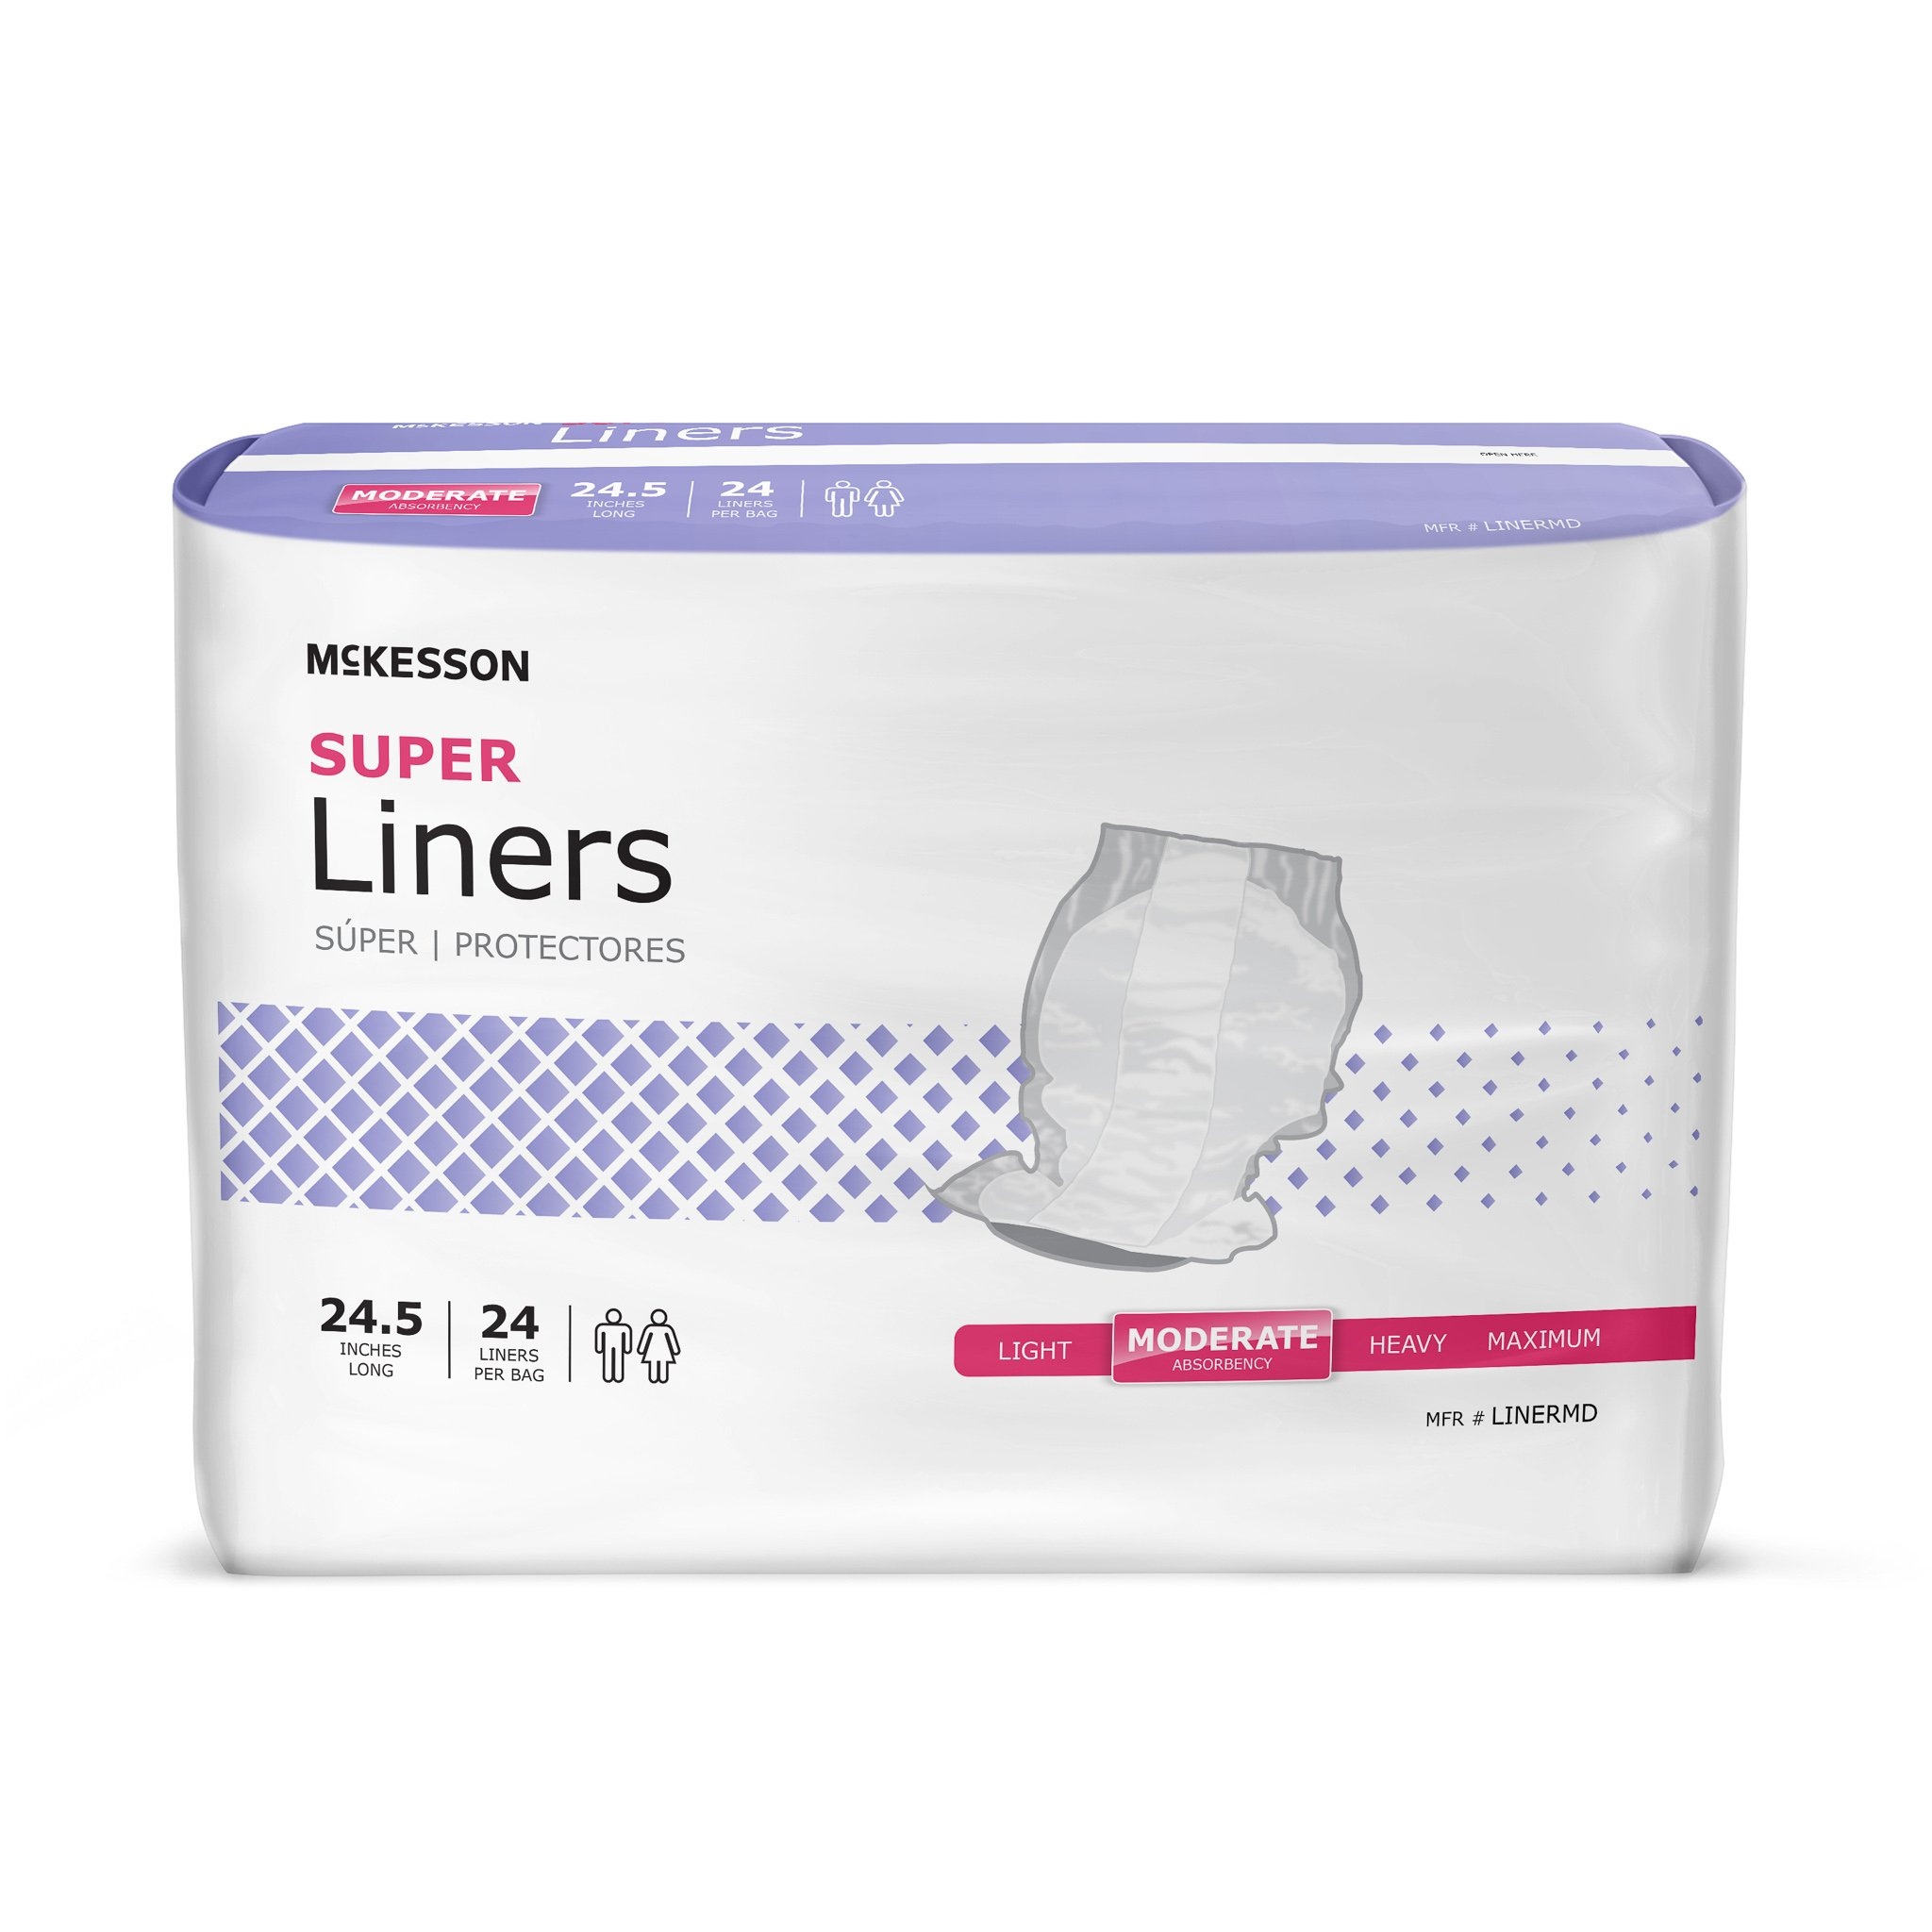 McKesson  Incontinence Liner 24-1/2 Inch Length Moderate Absorbency Polymer One Size Fits Most Unisex Disposable, LINERMD - Case of 96